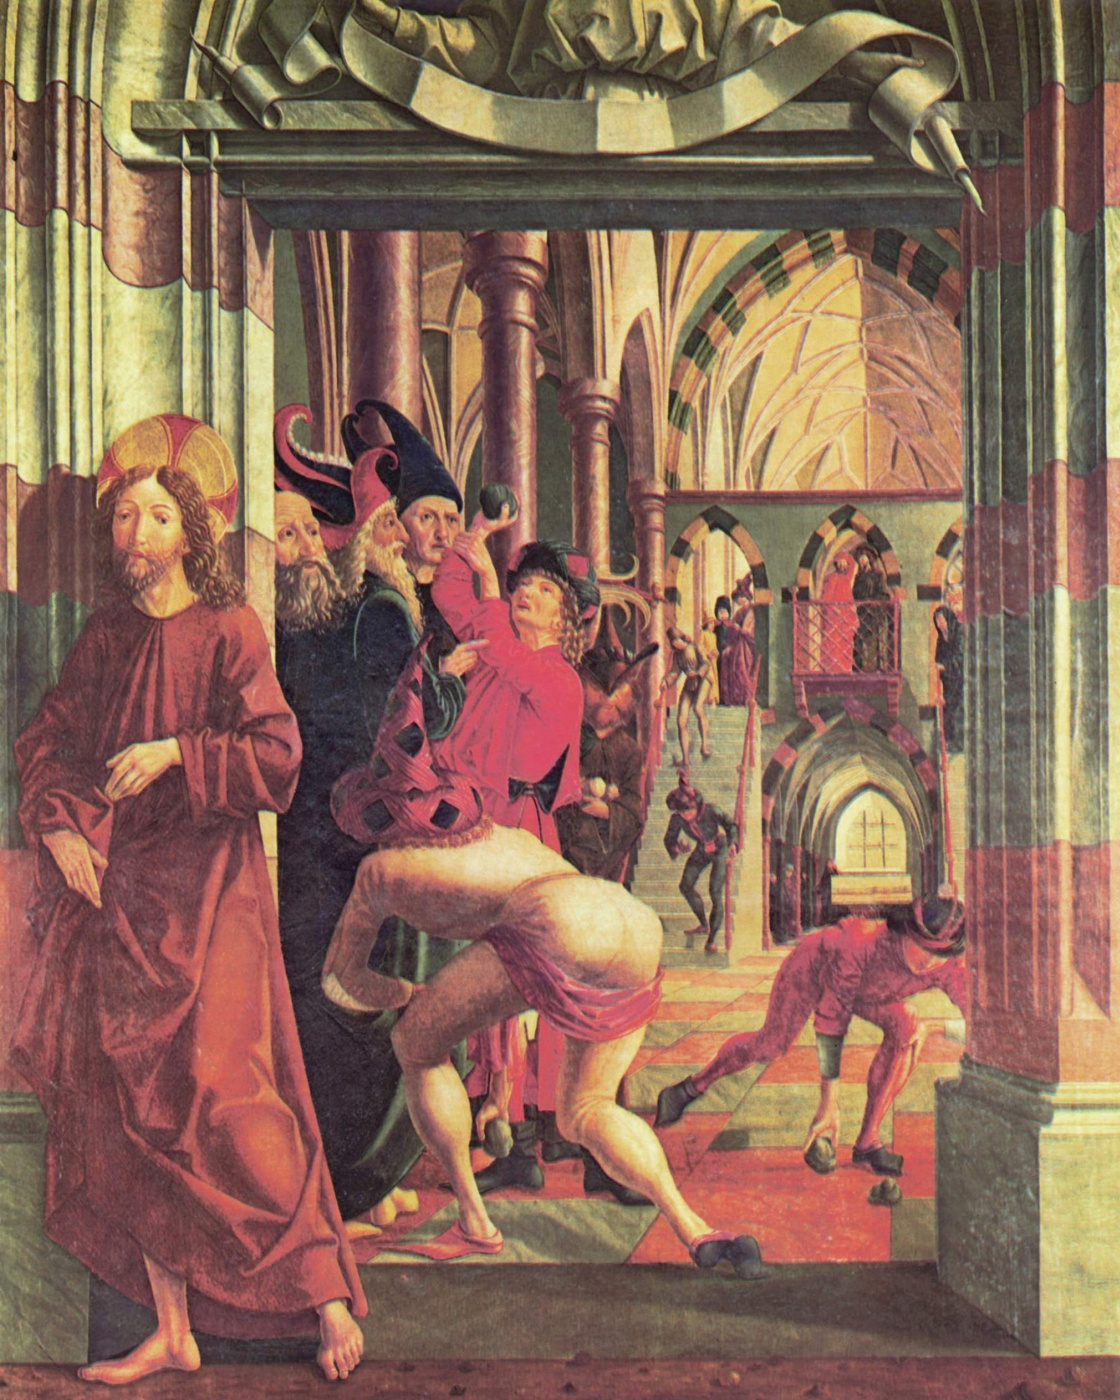 Michael Paher. The altar of St. Wolfgang, the inner side lieu sash, the lower part. The beating Christ with stones